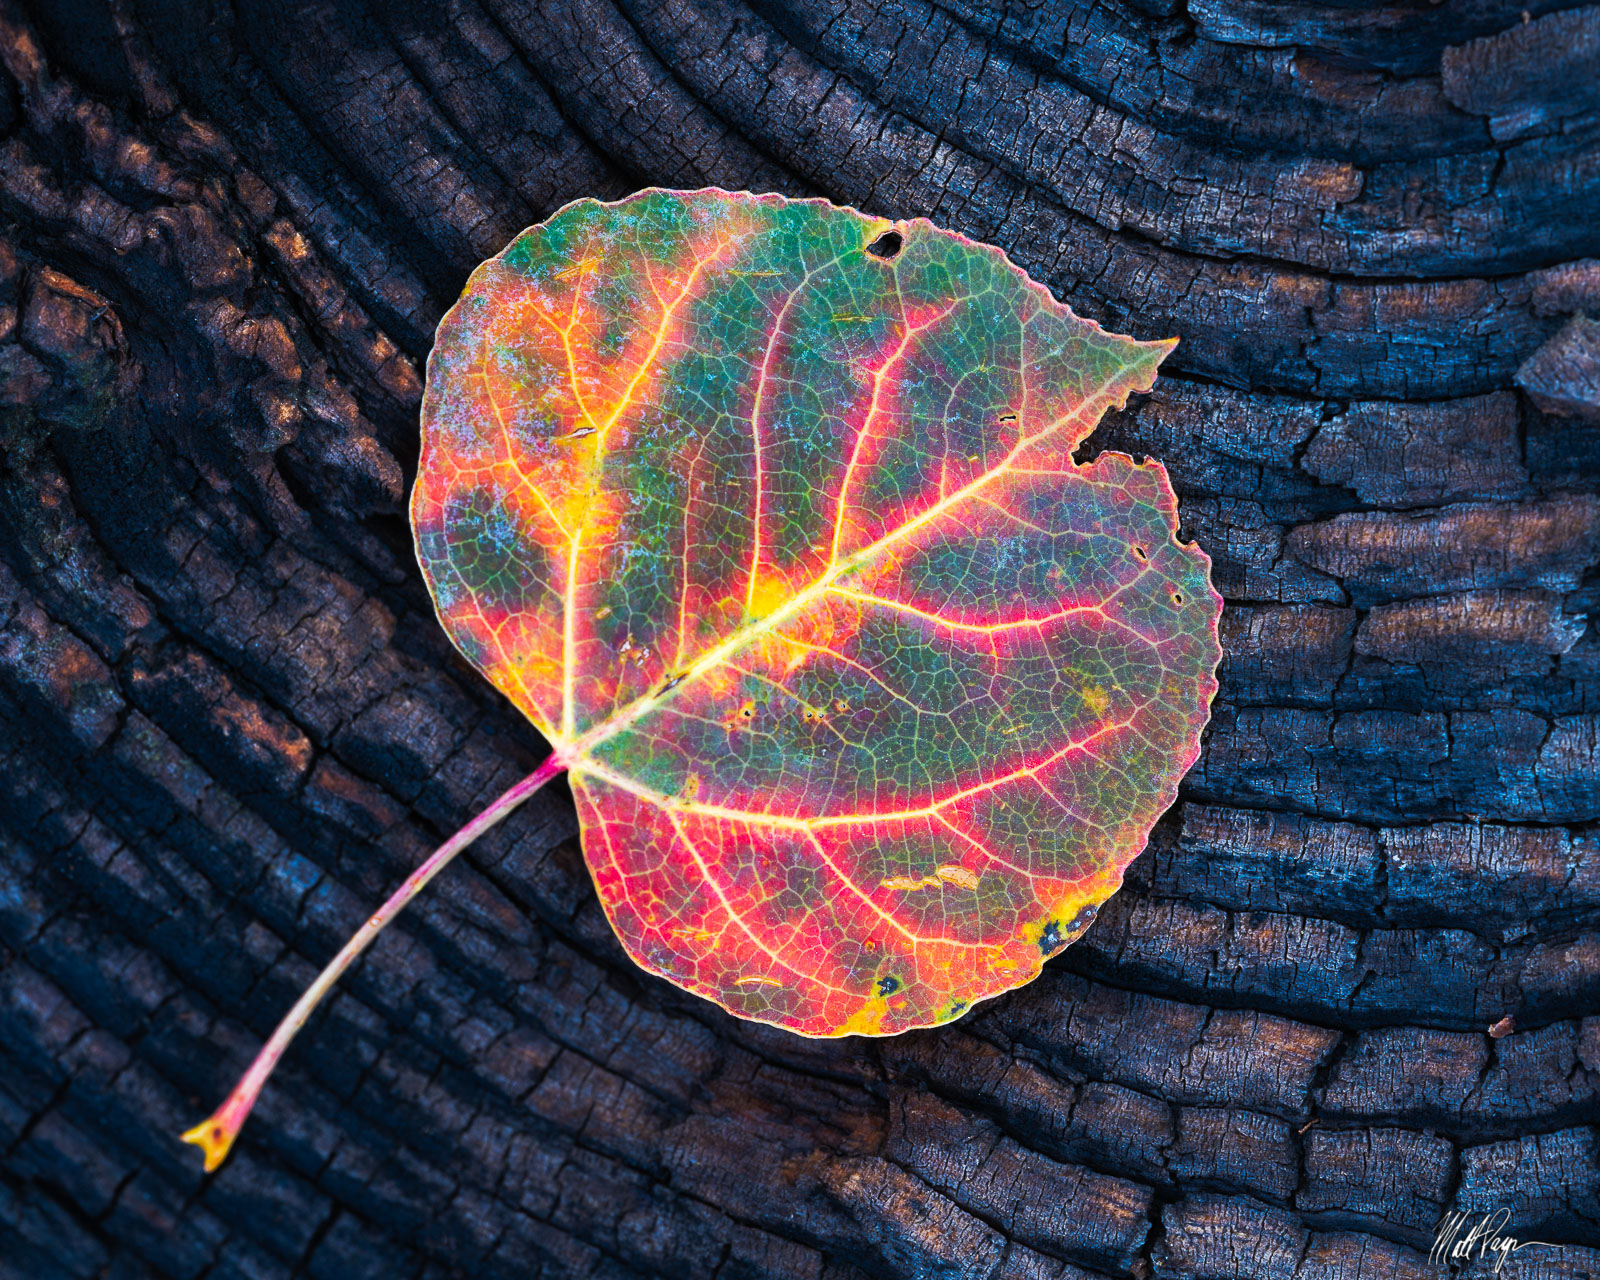 This single aspen leaf caught my attention on a slow walk through the woods in a very remote area of Colorado. The wood I found...